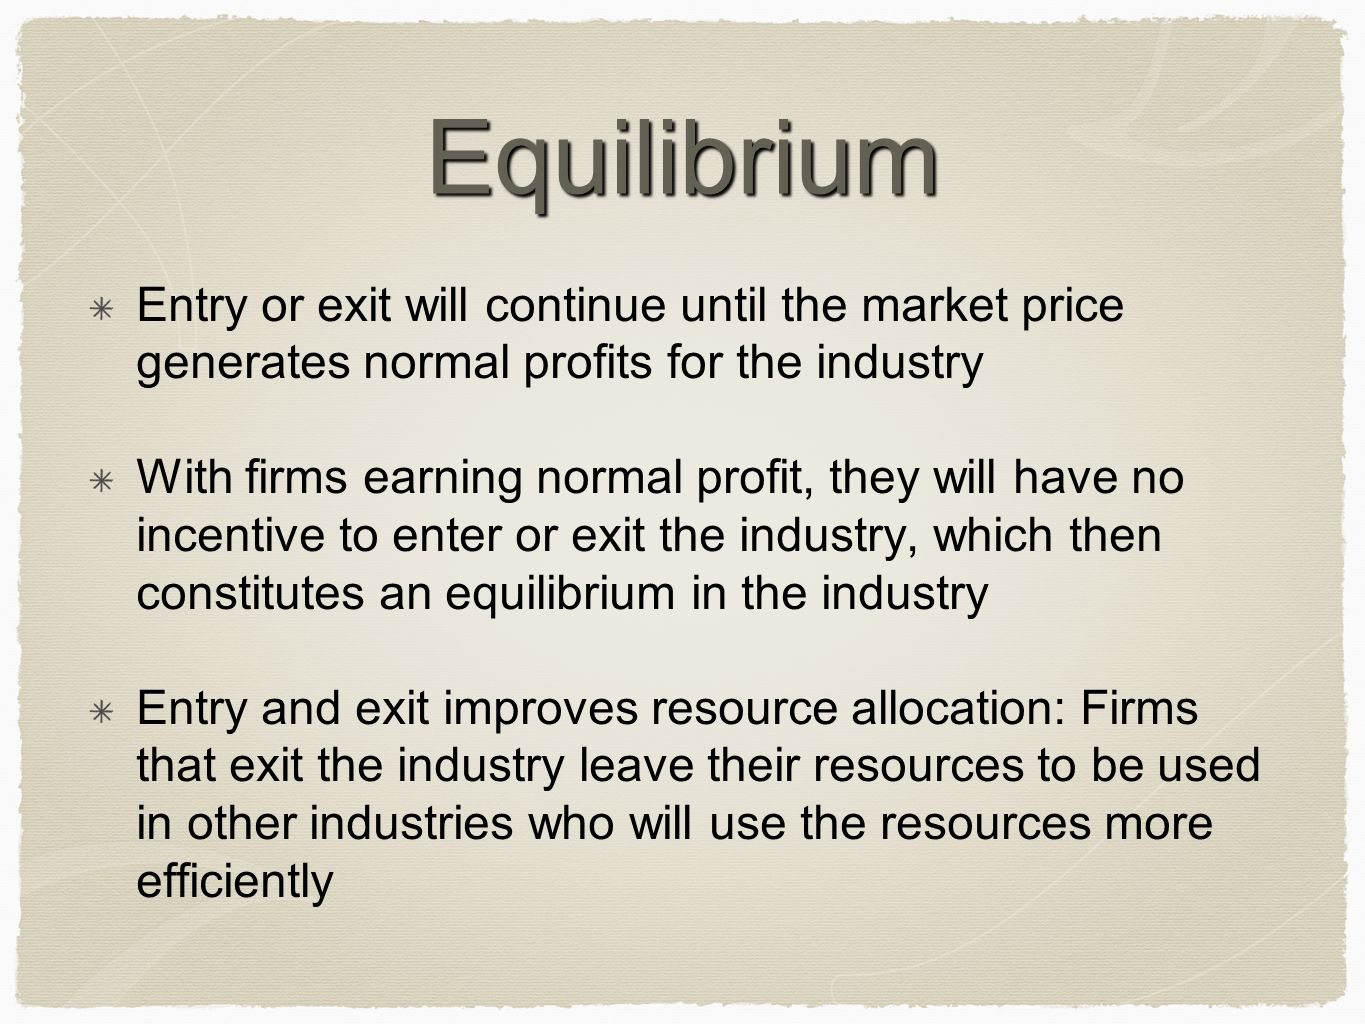 Equilibrium Entry or exit will continue until the market price generates normal profits for the industry.